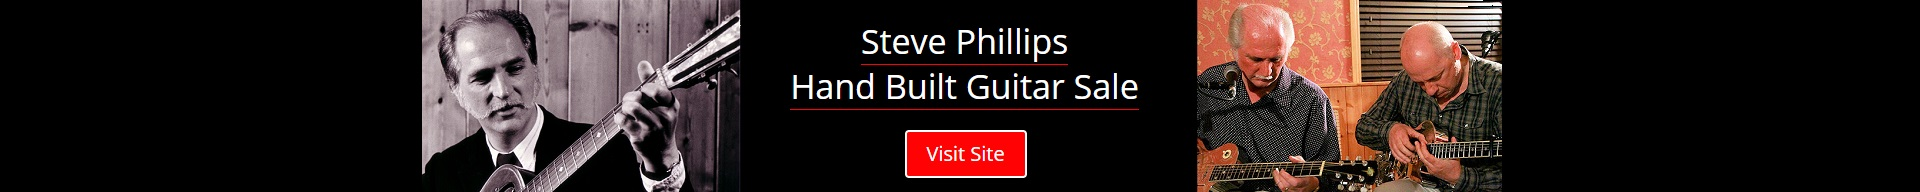 Steve Phillips Hand Built Guitars For Sale